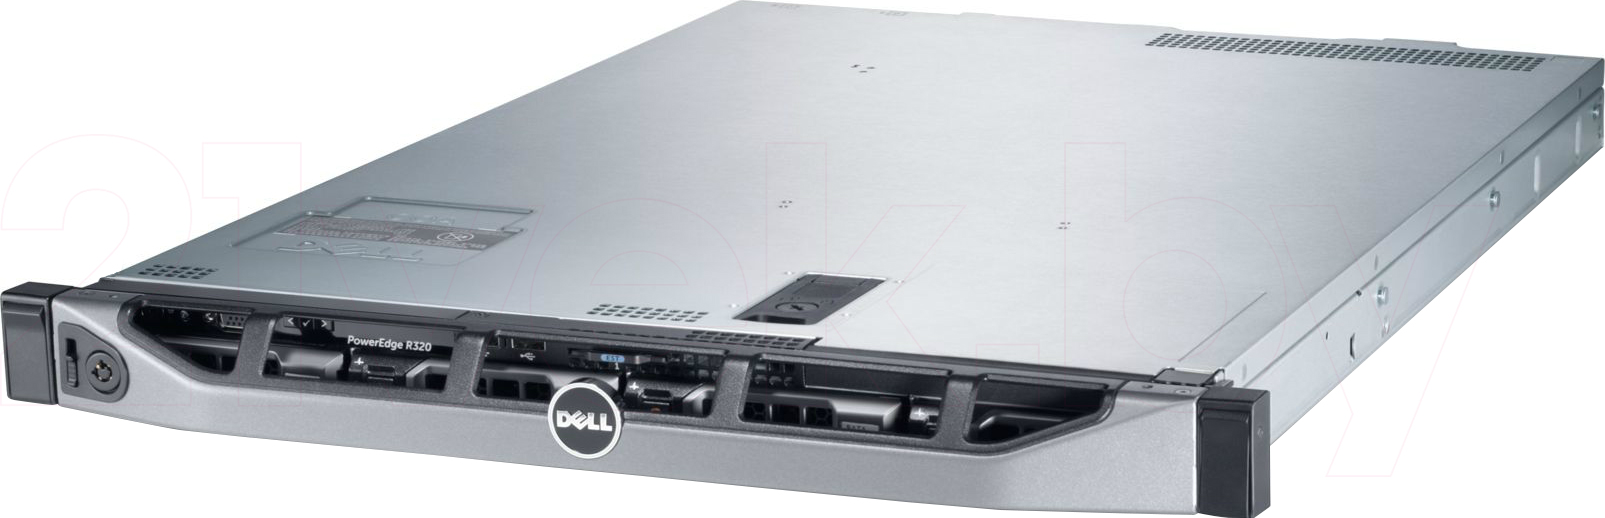 PowerEdge R320 210-ACCX 21vek.by 28007000.000